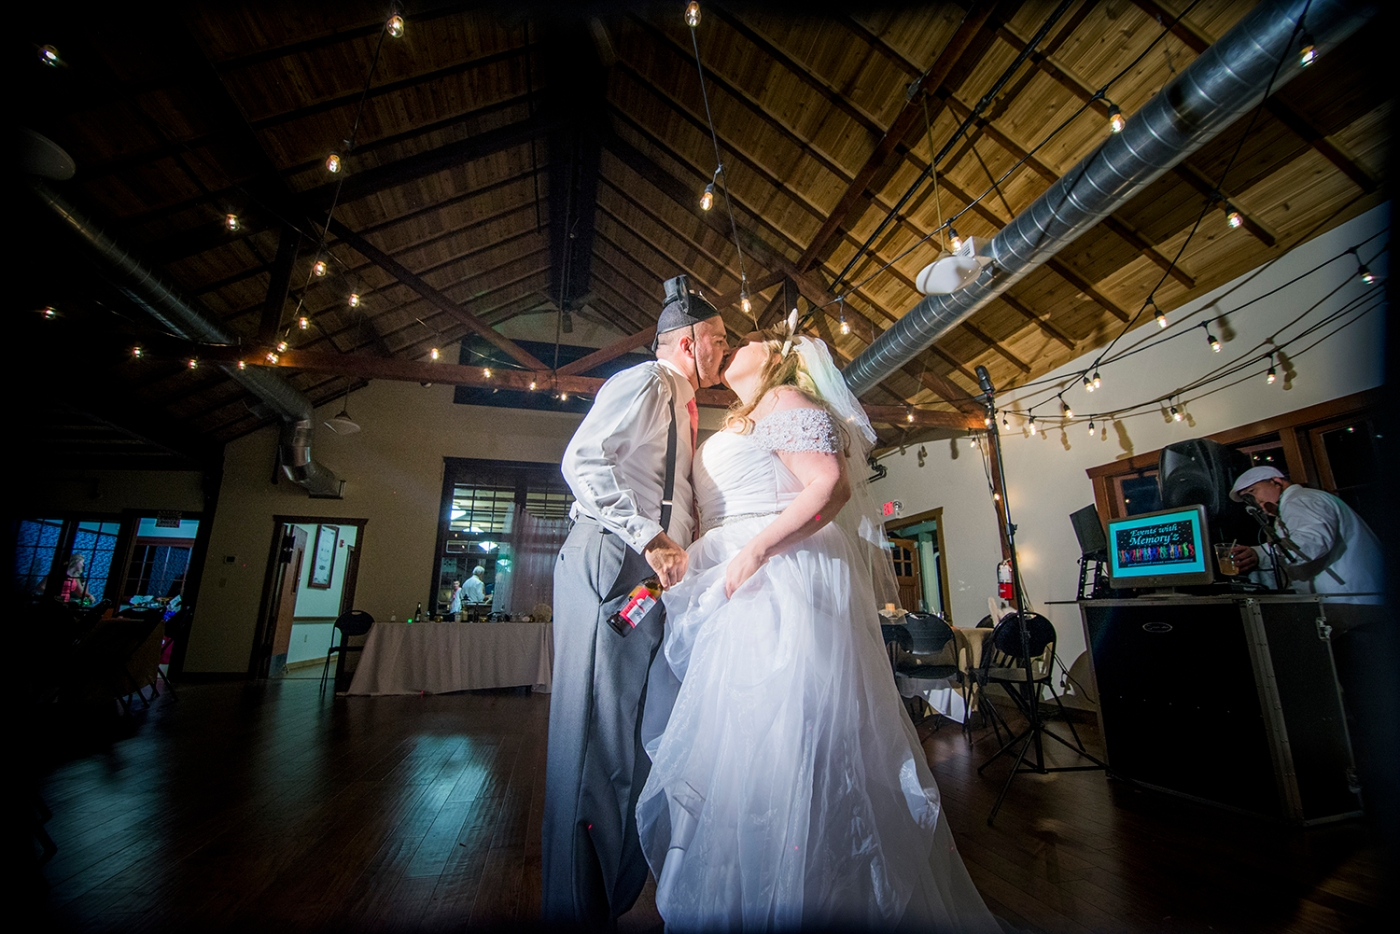 Jane_S_Seattle_photography_Kadie_and_Steve_2016_Des_Moines_Marina_Wedding_DSC_2869